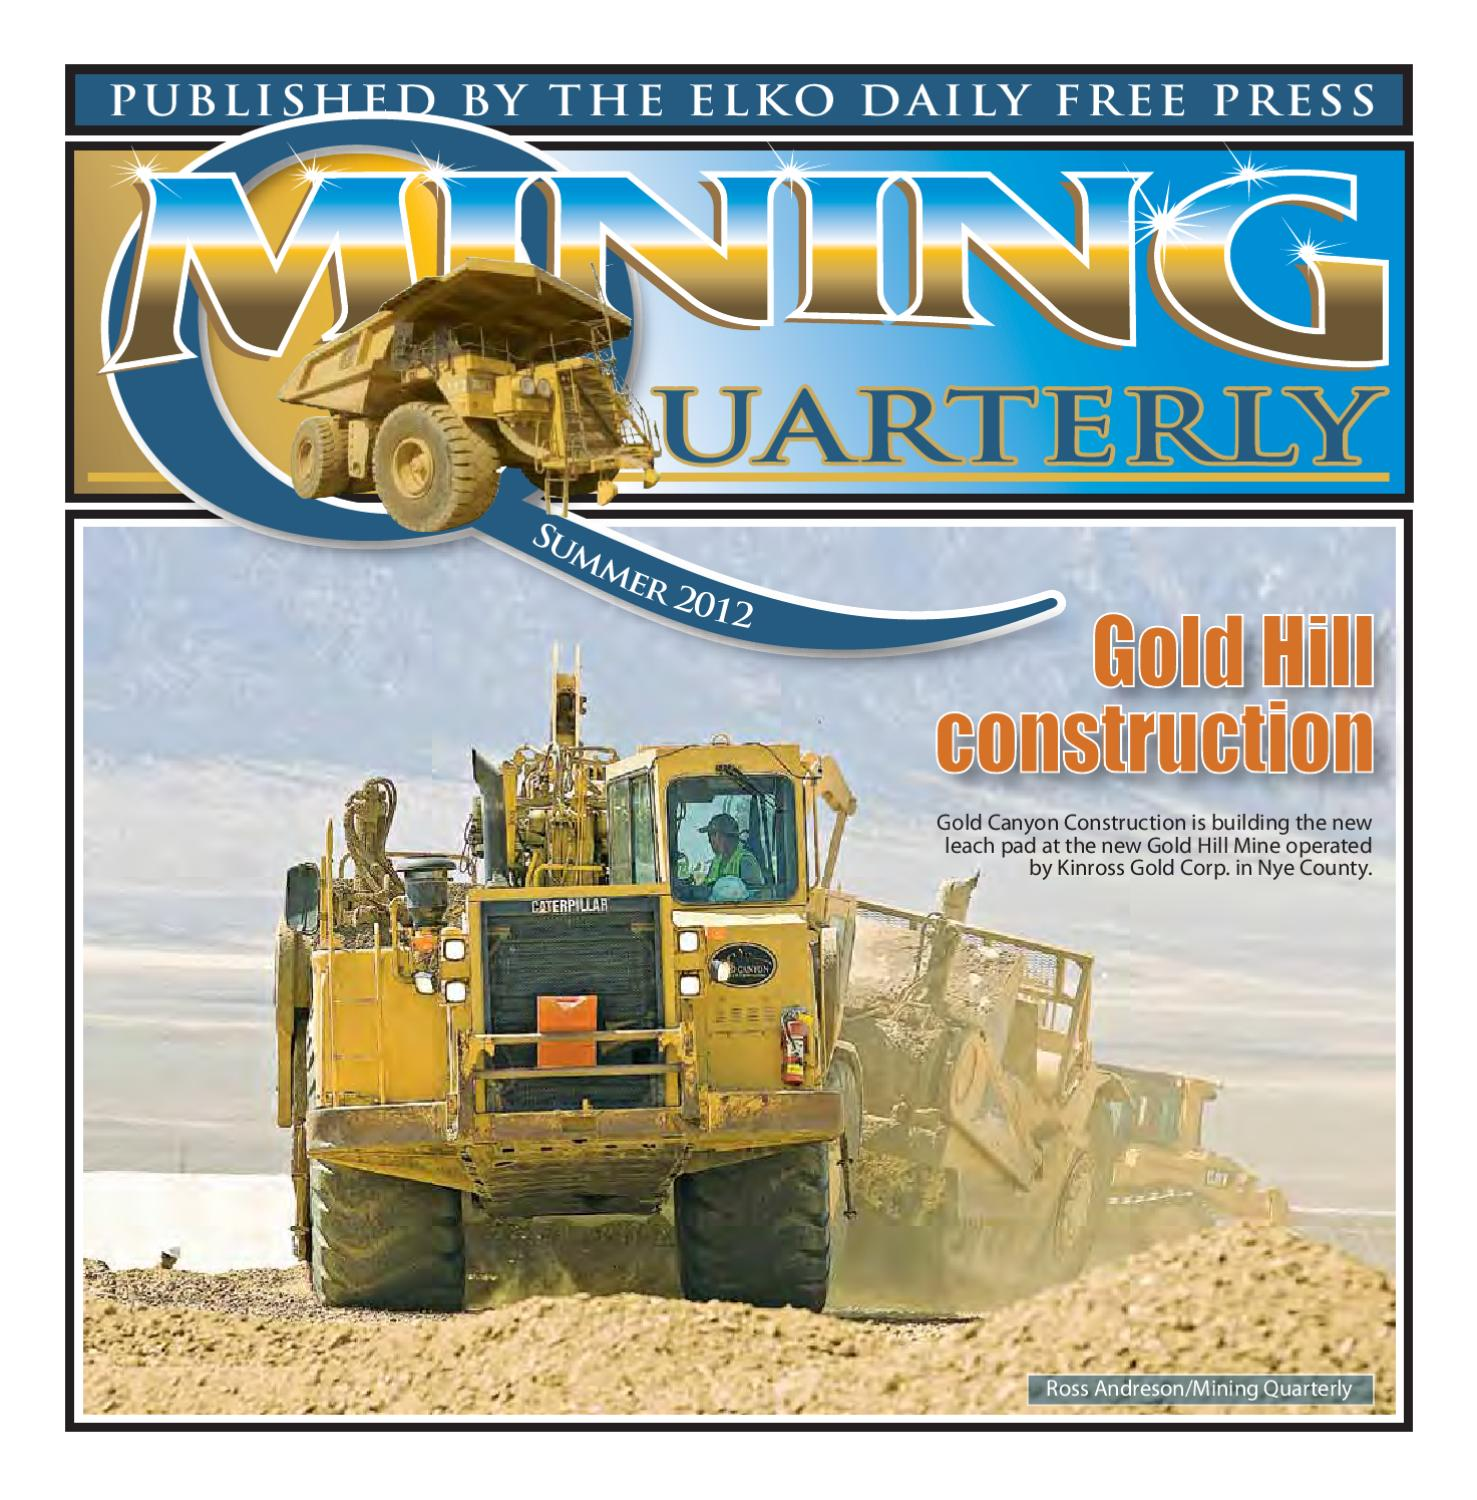 Mining Quarterly Summer 2012 by The Elko Daily Free Press issuu